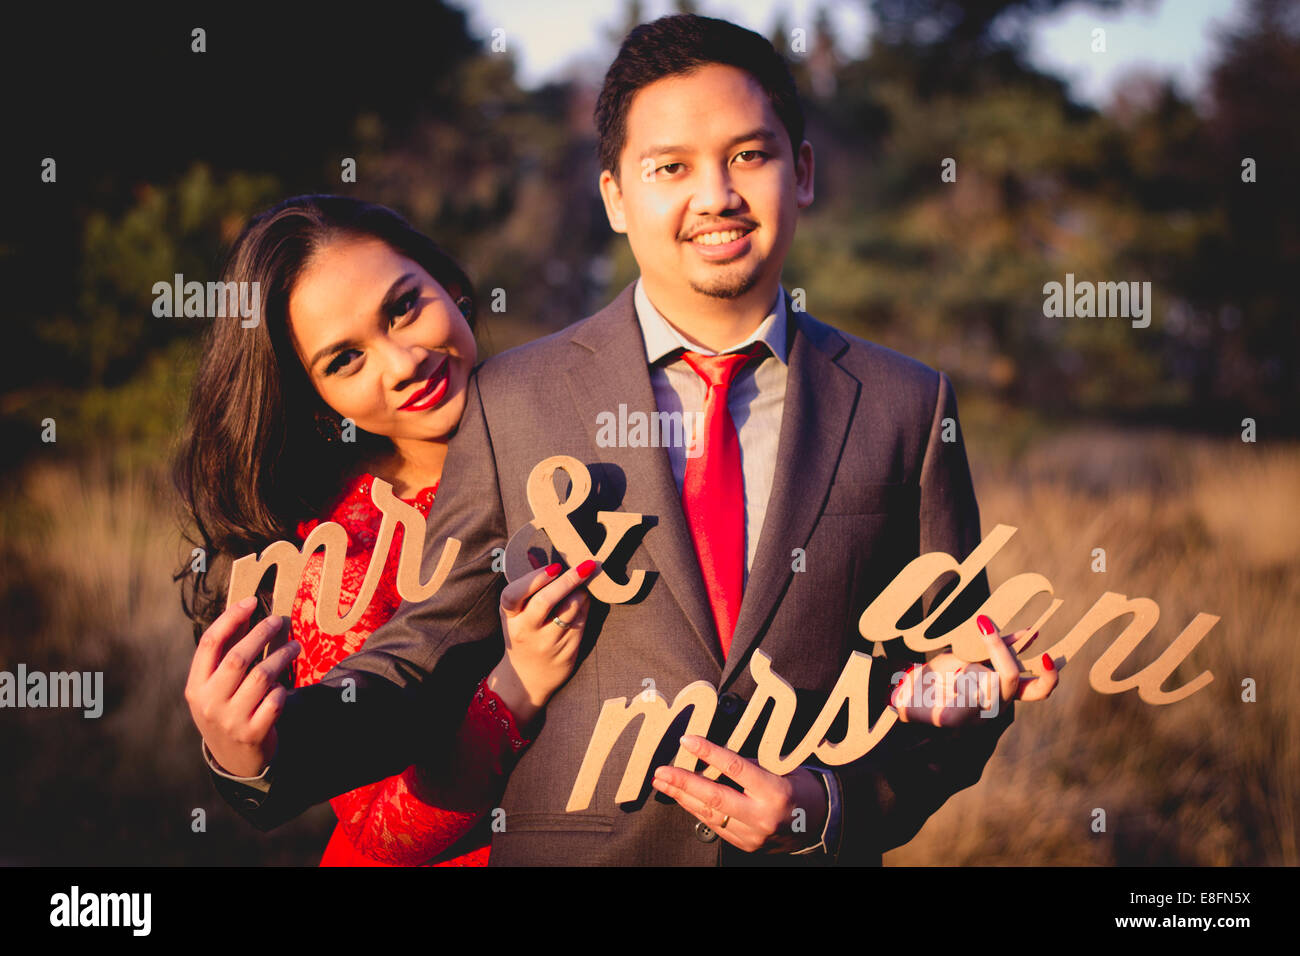 Netherlands, Portrait of couple holding cut out letters - Stock Image